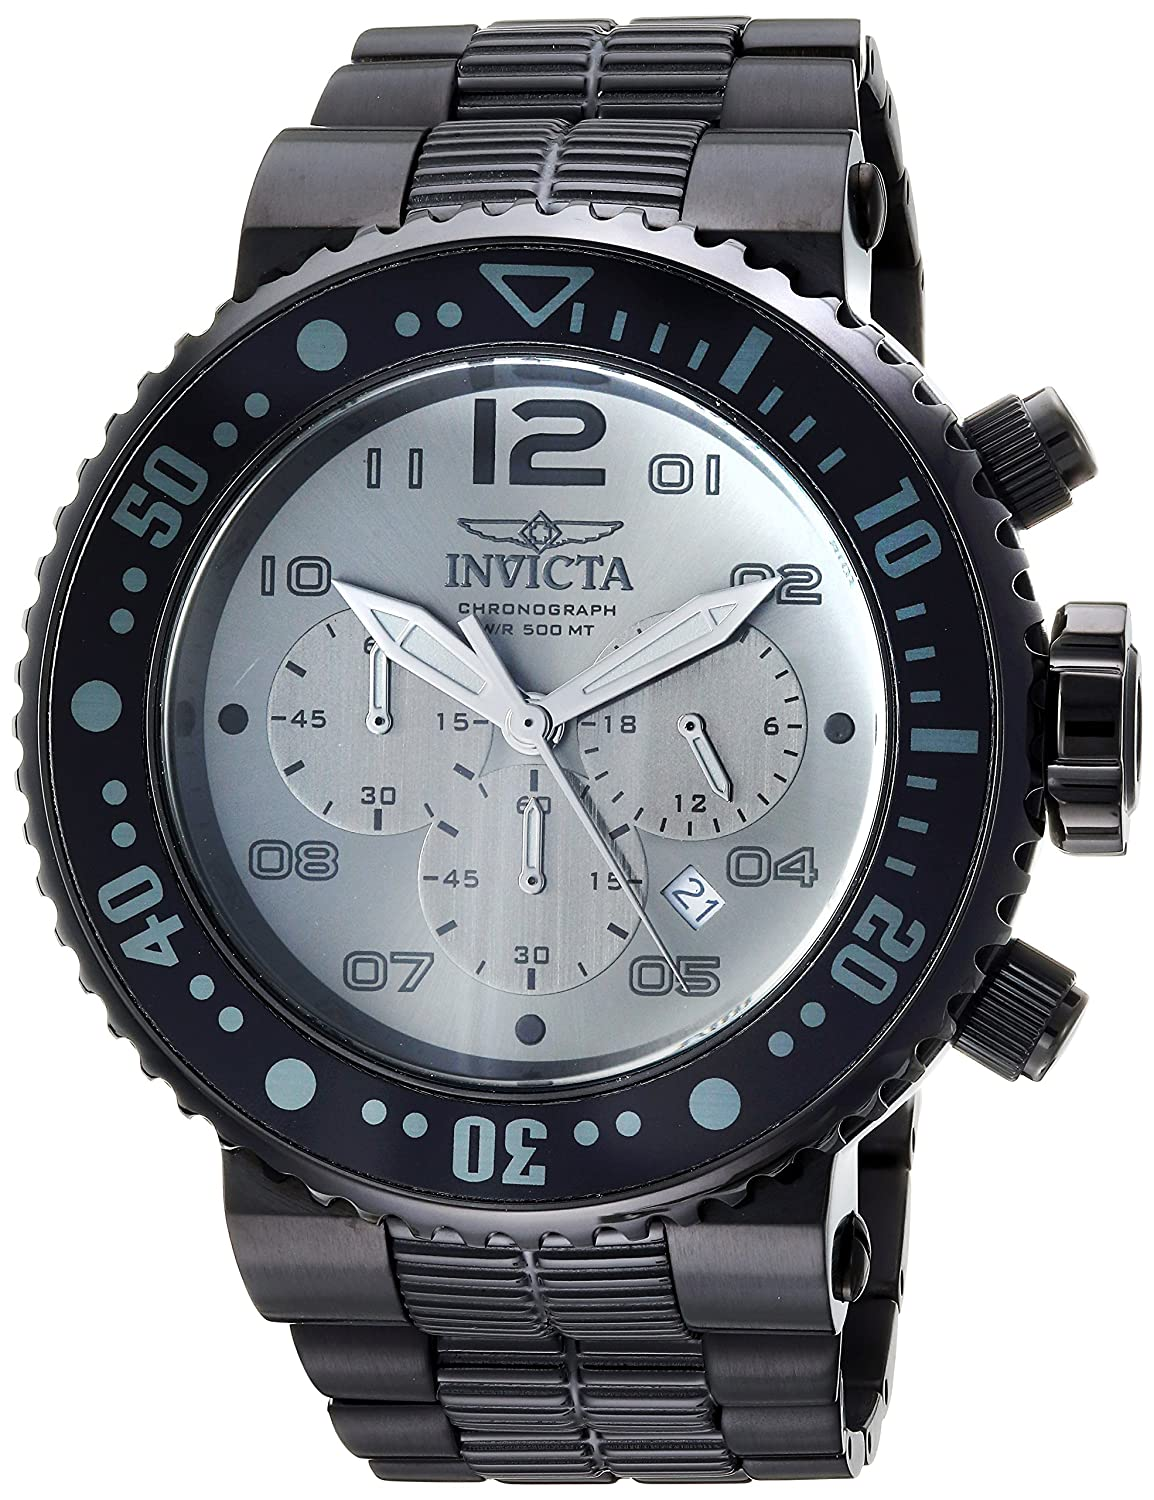 Invicta Men s Pro Diver Quartz Diving Watch with Stainless-Steel Strap, Black, 29.3 Model 25079